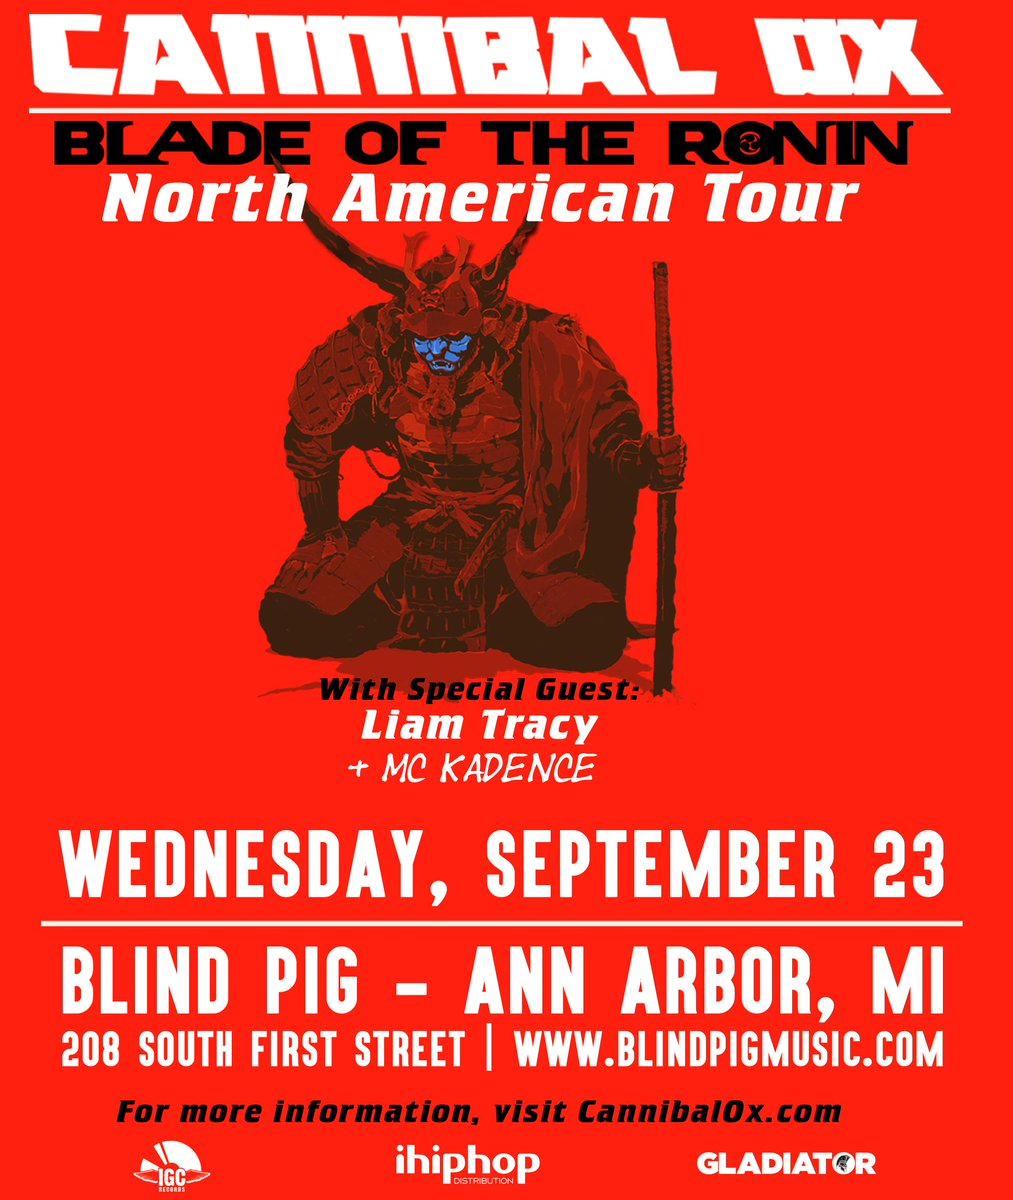 Getting hype for tomorrow night: @CannibalOx with @LiamTracyMusic & Ann Arbor's Kadence! http://t.co/0jsLajycRJ http://t.co/4Ecp3M7OIz